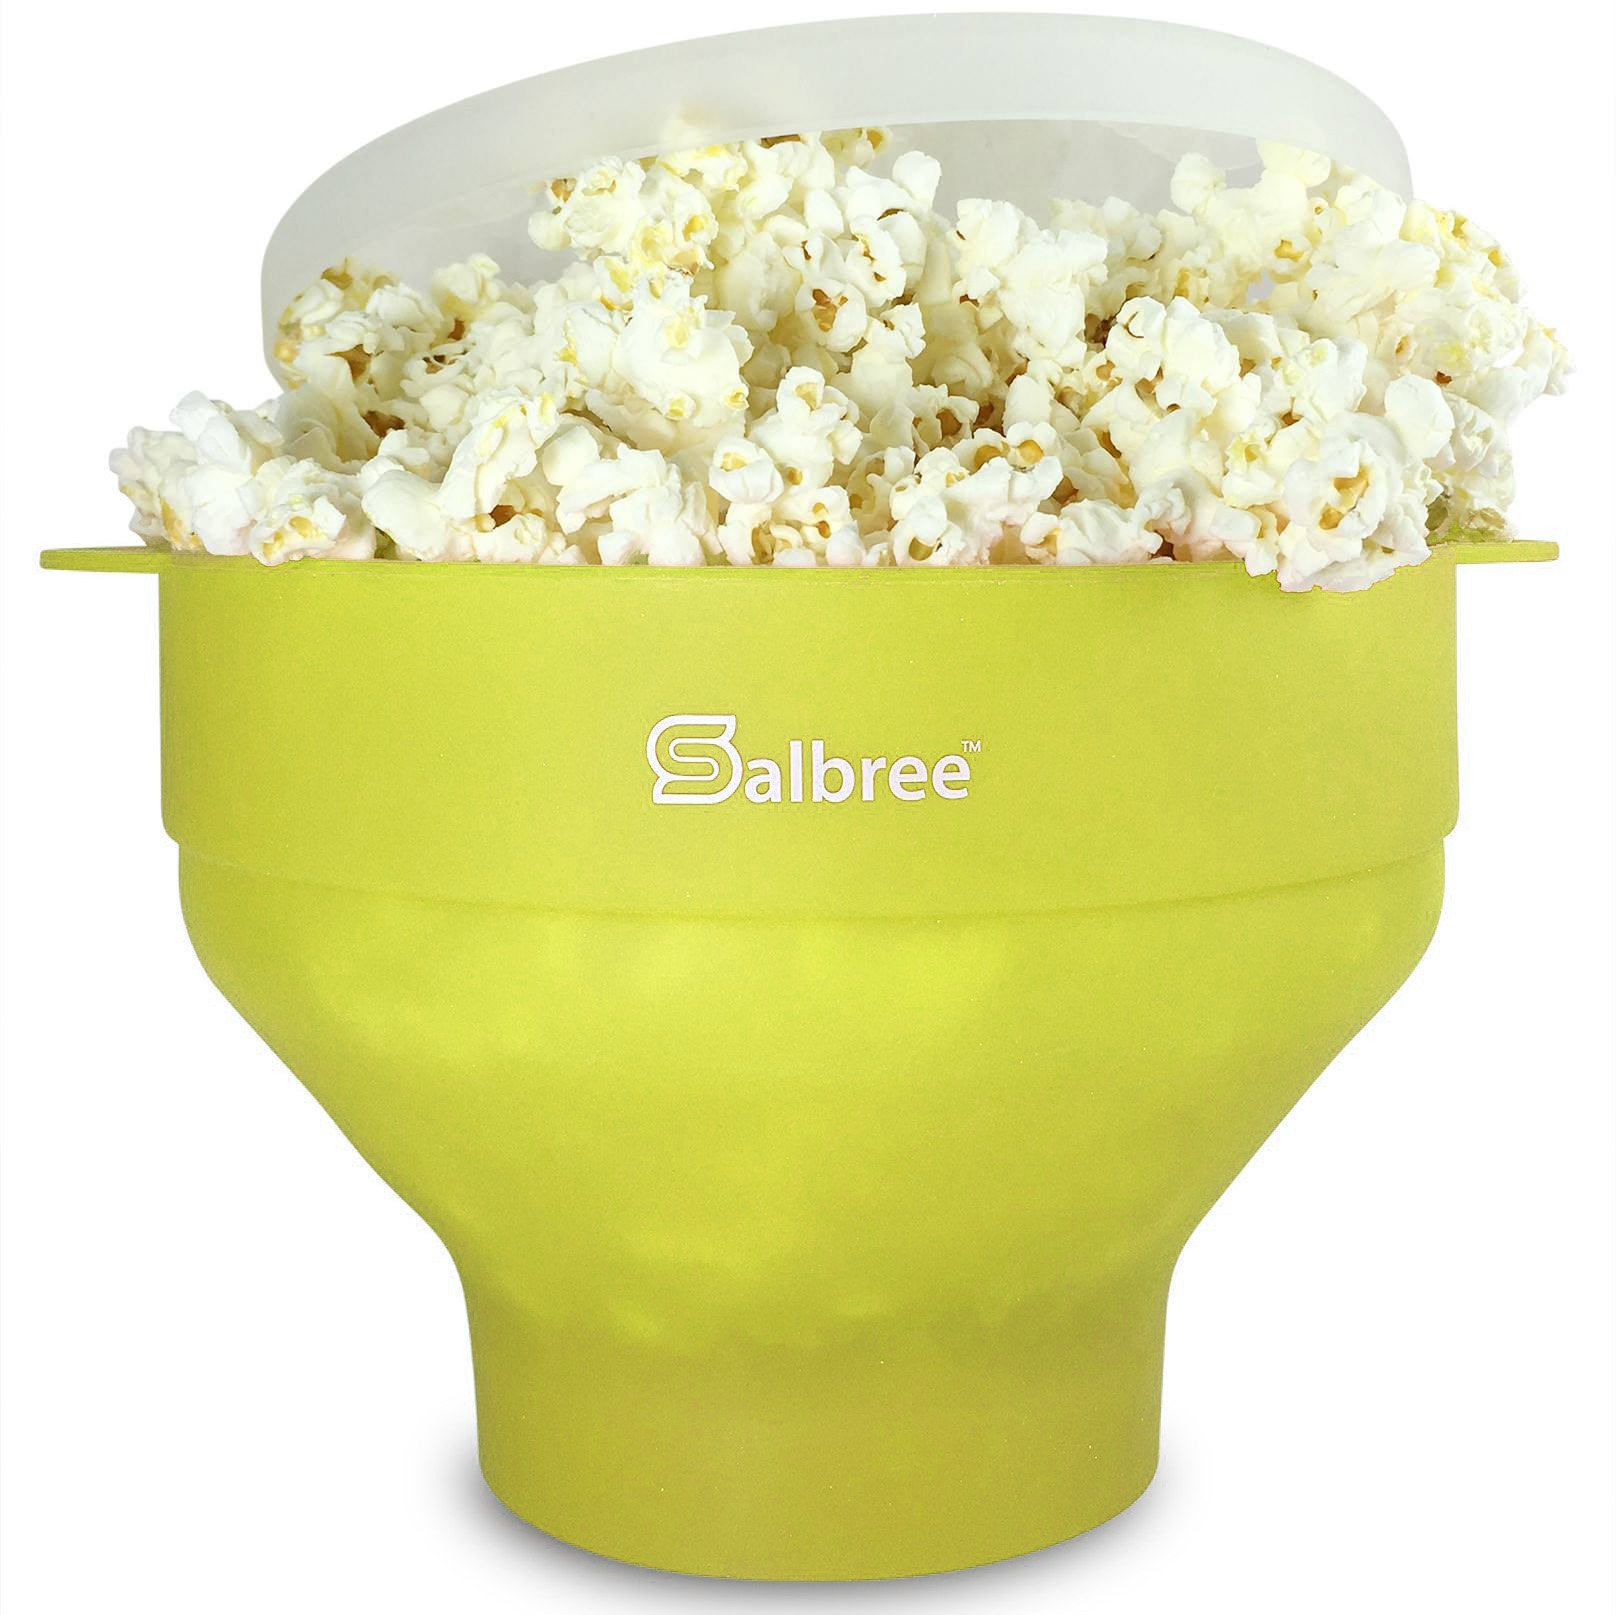 The Original Salbree Microwave Popcorn Popper, Silicone Popcorn Maker, Collapsible Bowl BPA Free (Lime)